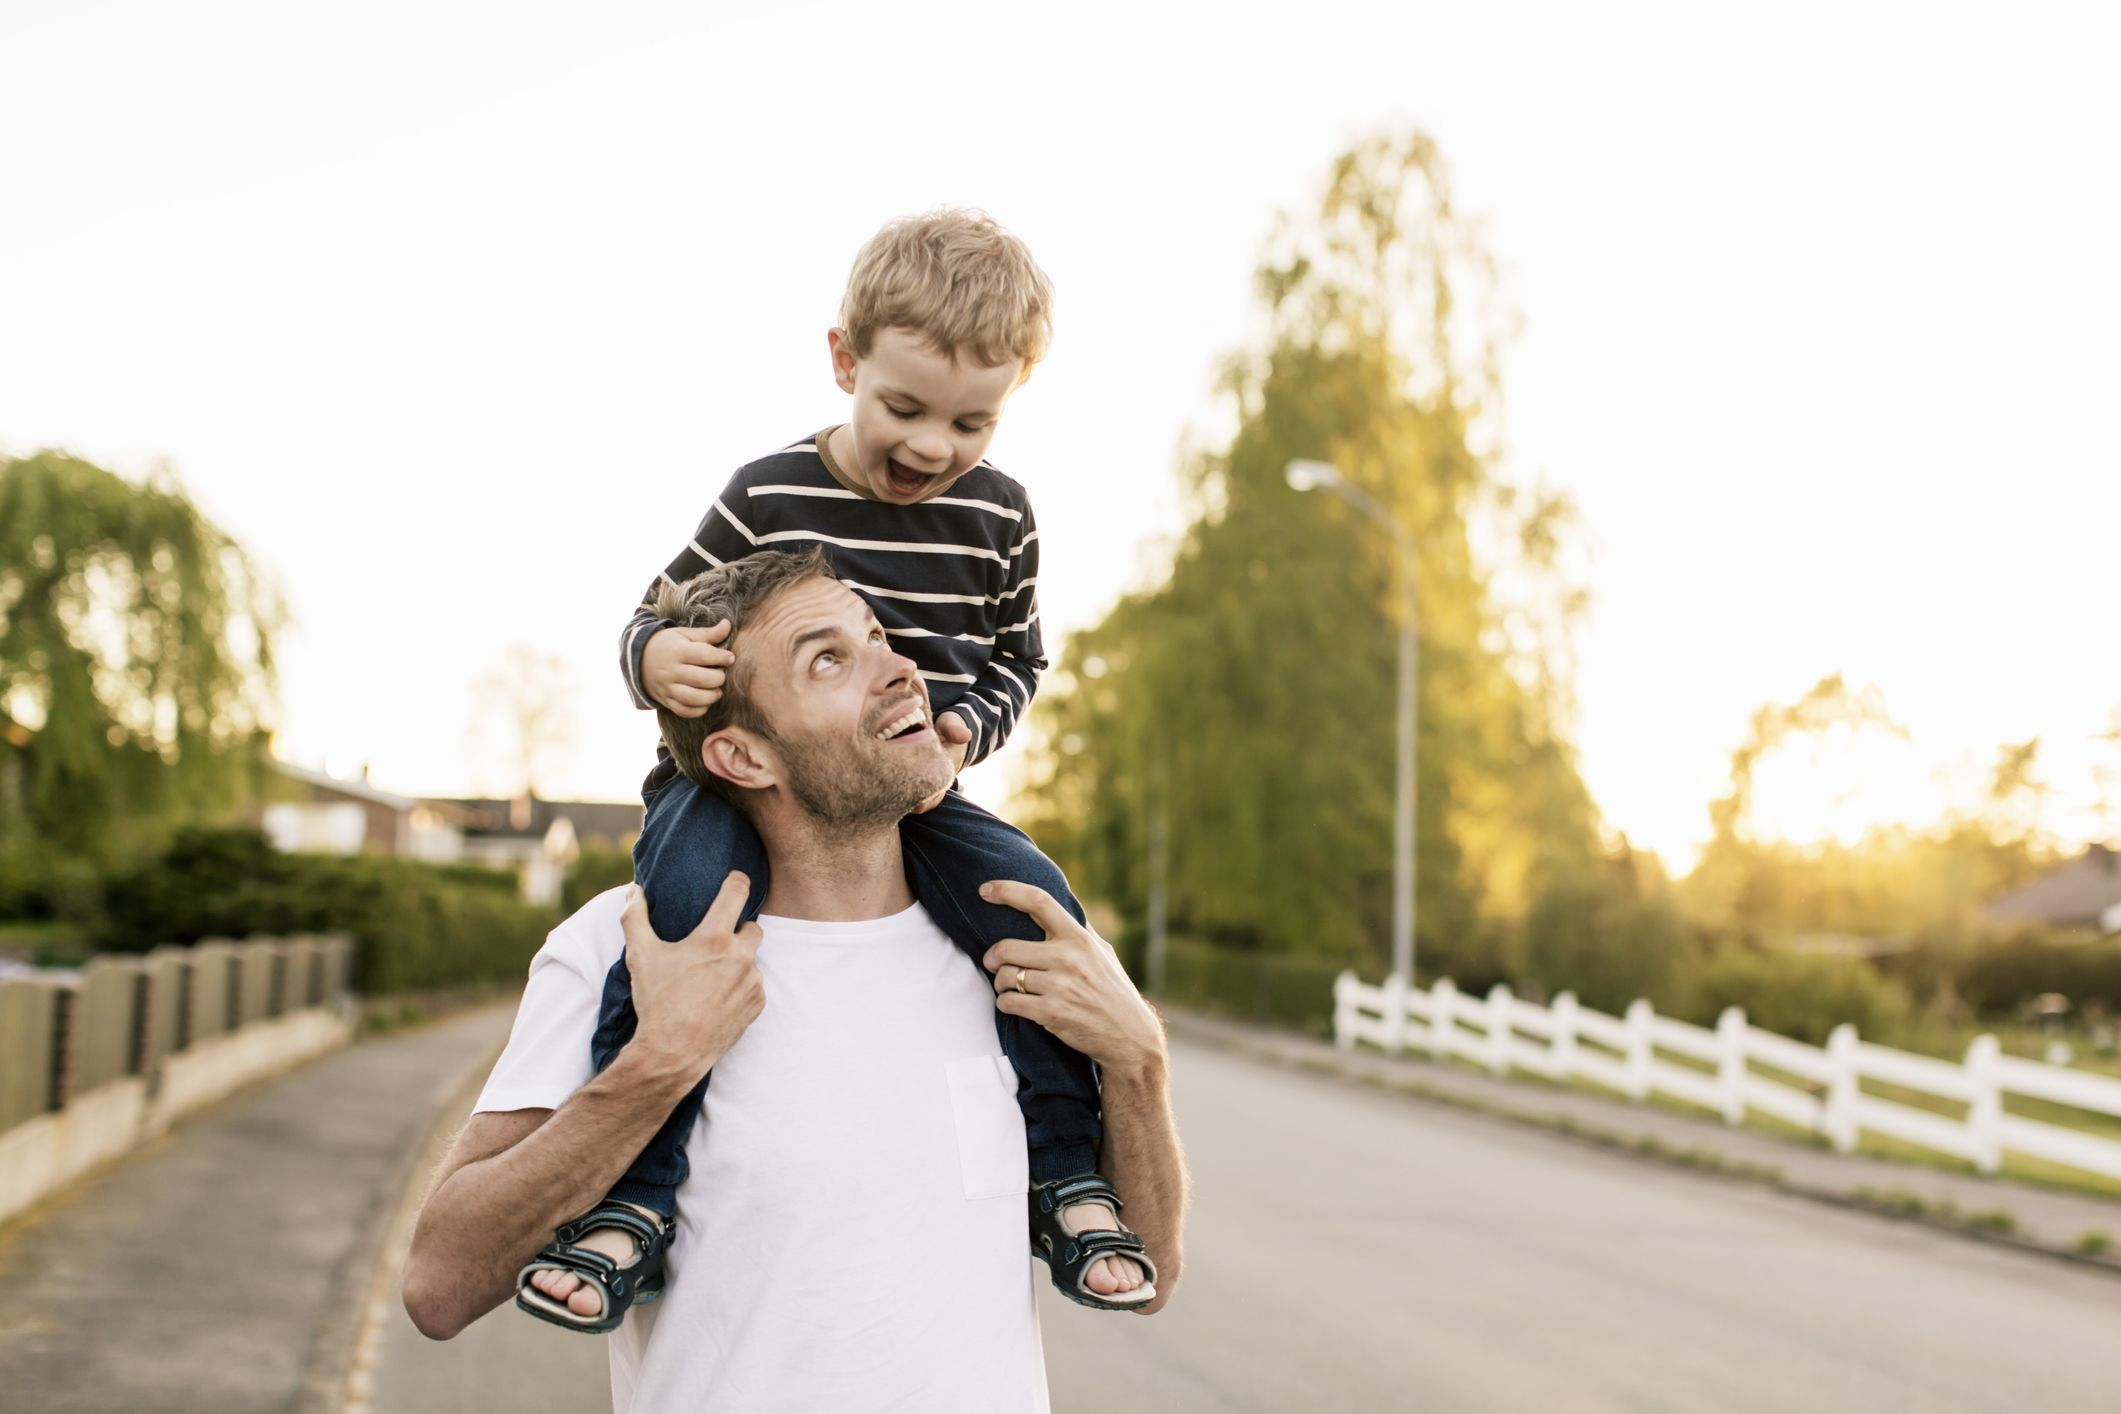 071a1dd1 32 Best Step Dad Quotes - Stepfather Quotes for Father's Day